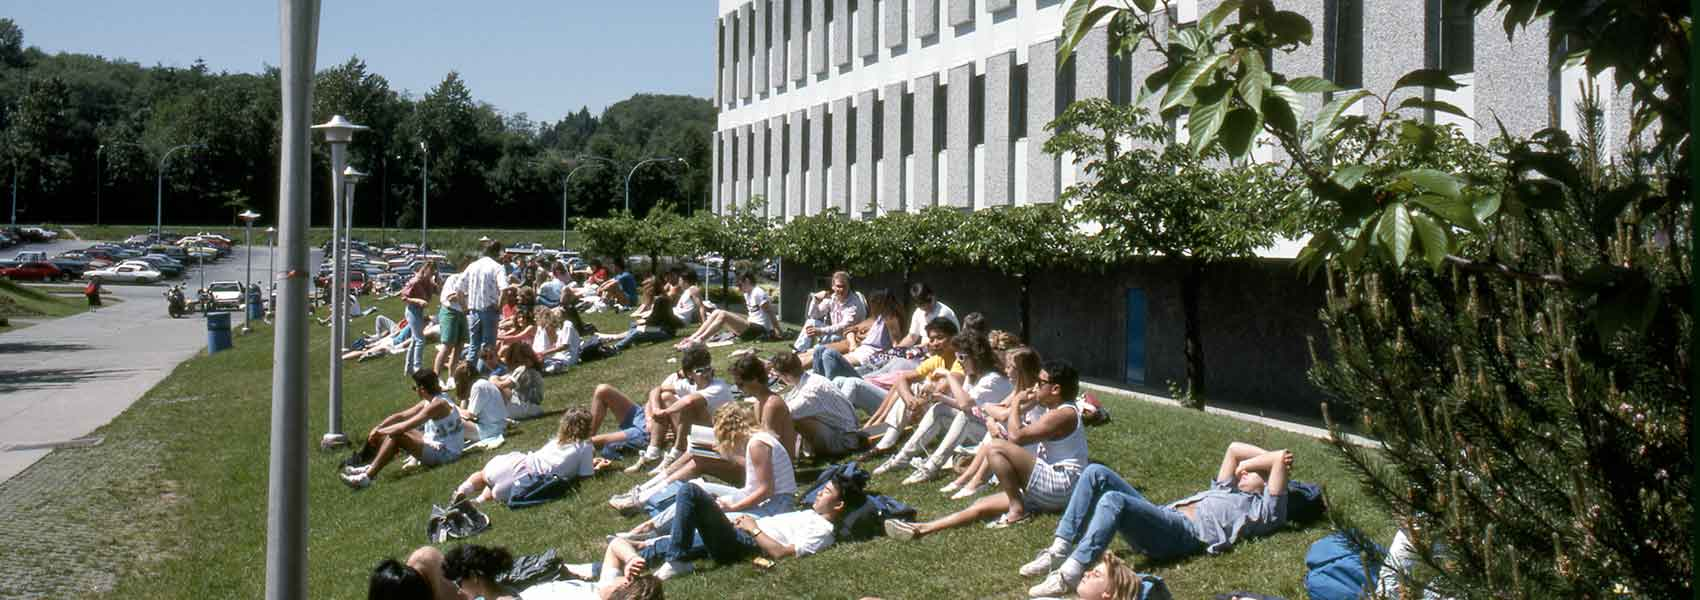 Students lying on a grassy hill on campus on a sunny day.